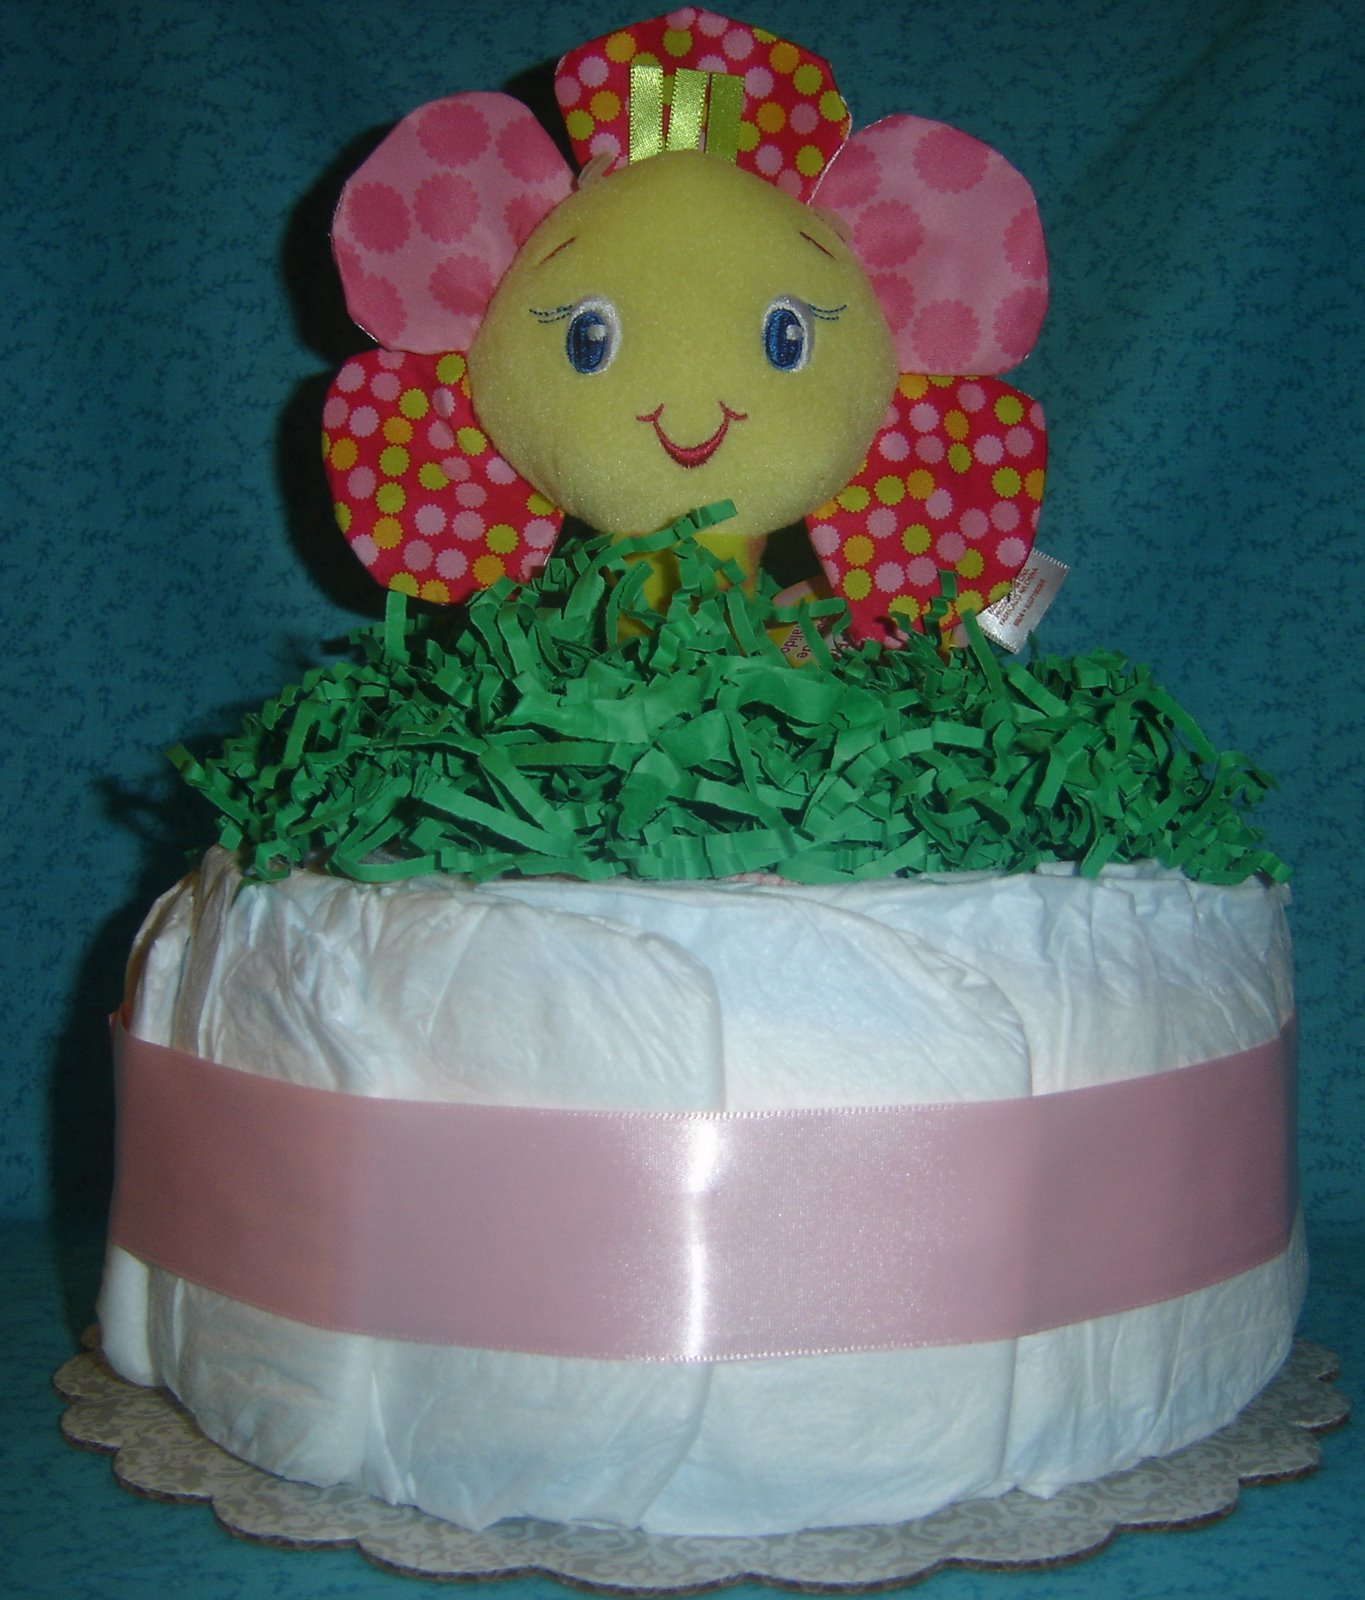 Baby Shower Cakes For Sale ~ Living room decorating ideas baby shower cakes for sale